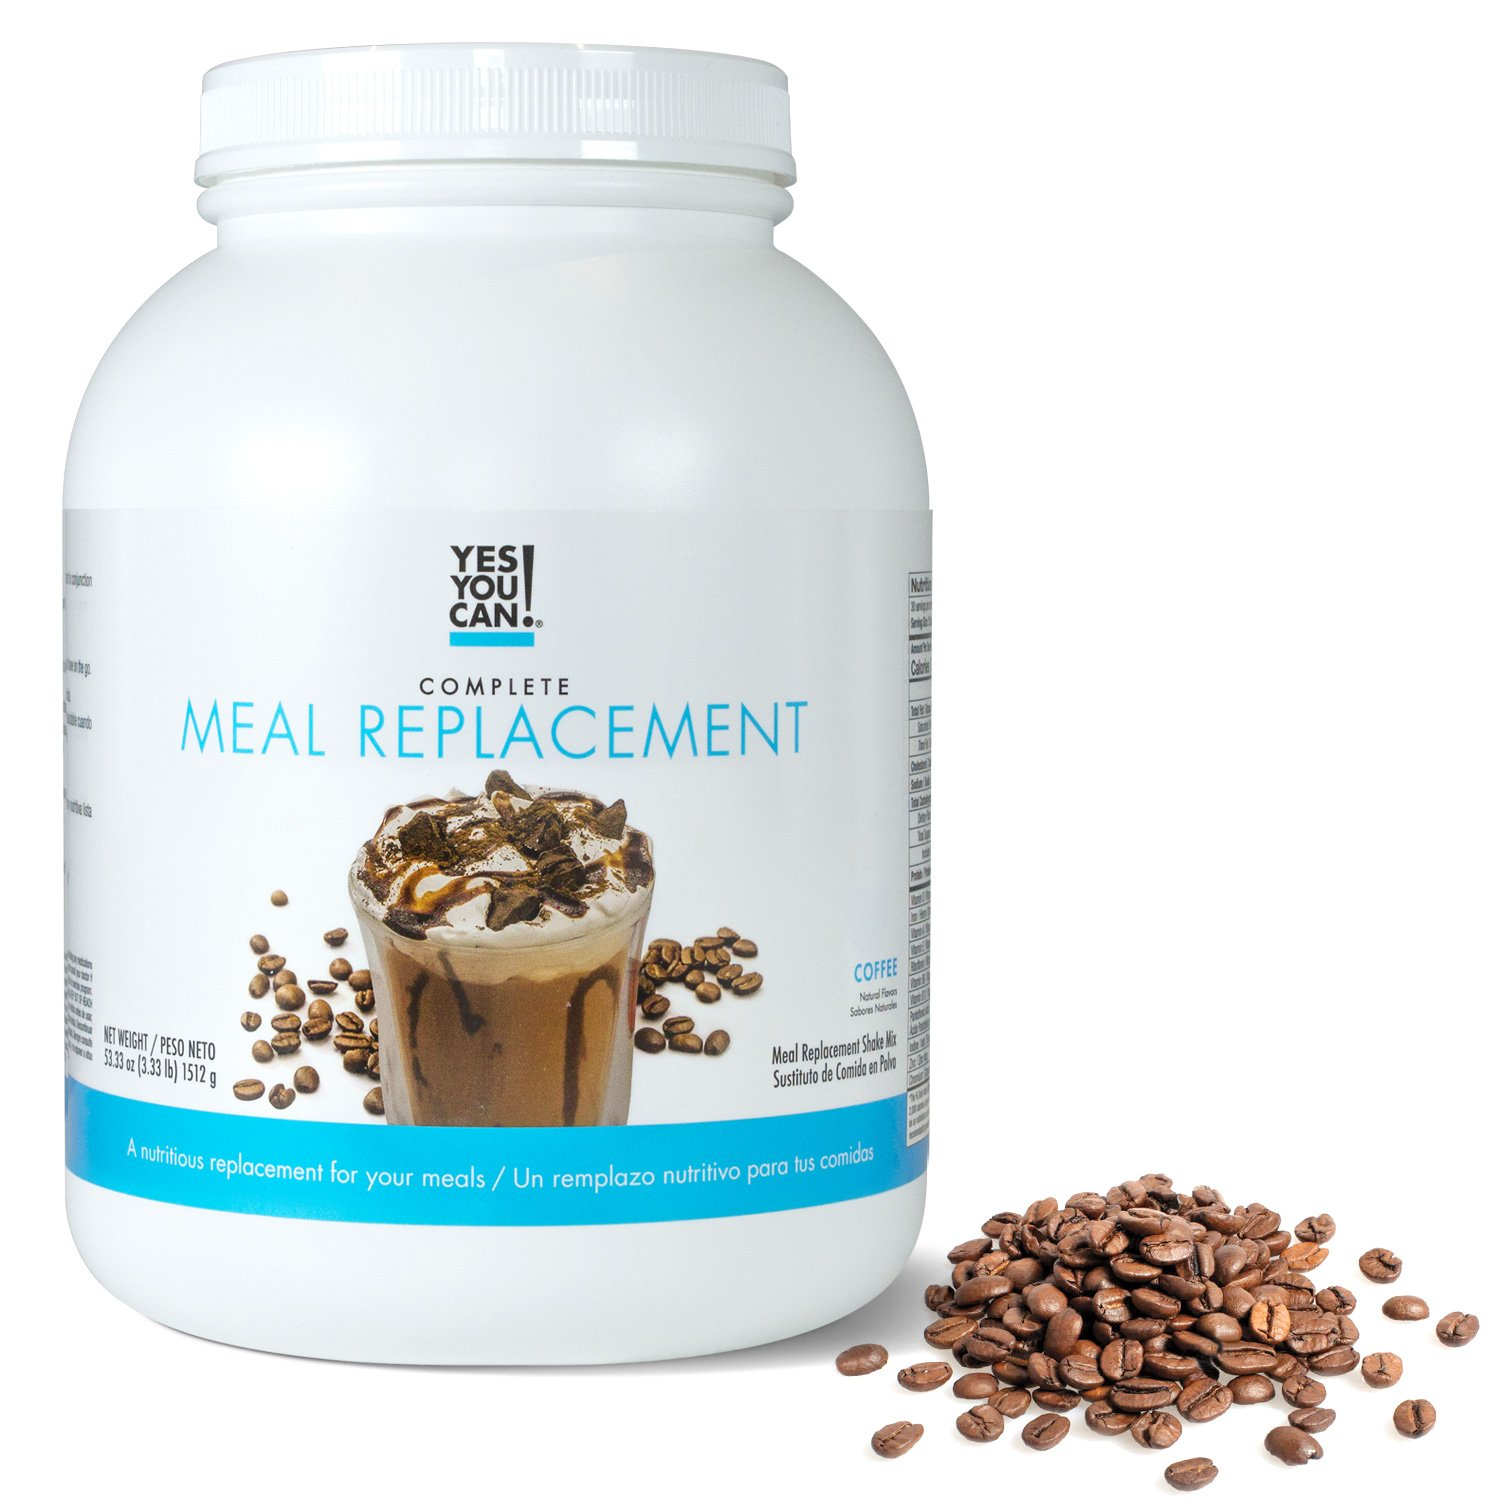 Yes You Can! Complete Meal Replacement, Up to 2 Meals a Day, Helps Lose Weight - Sustituto de...